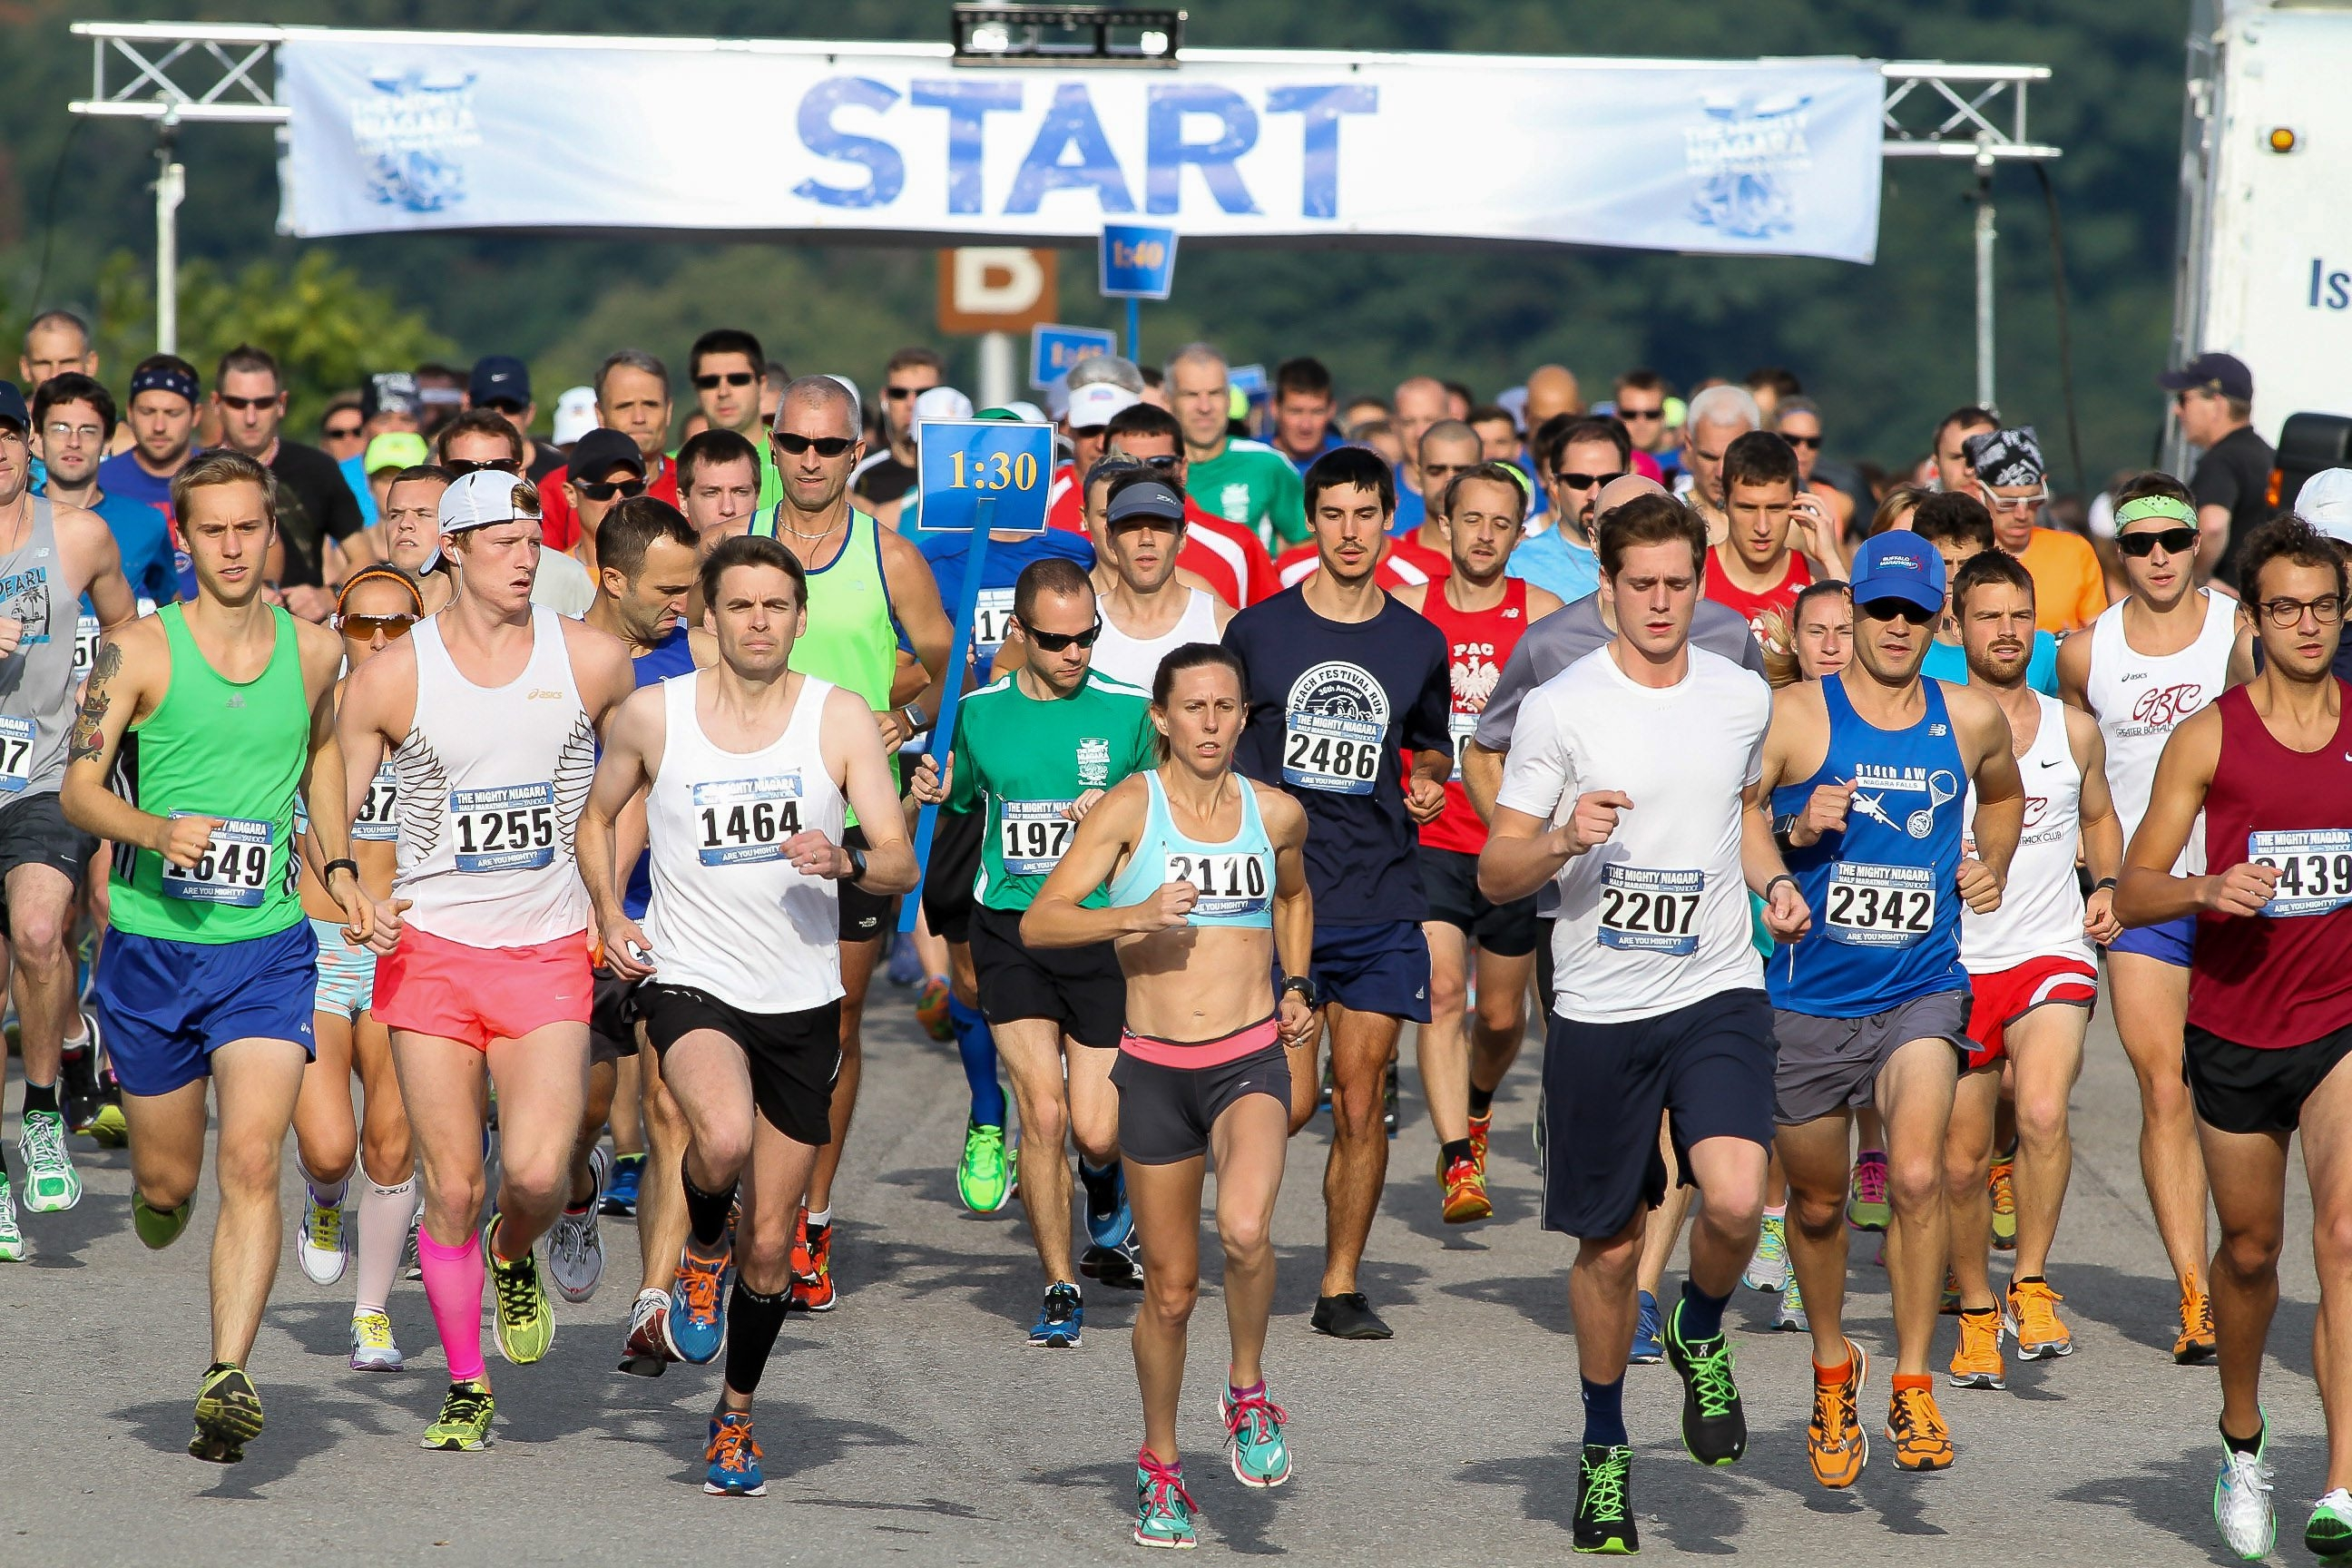 The 2015 Mighty Niagara Half Marathon to be held Saturday is attracting participants from England, Ireland, Mexico, Germany, Austria and Ethiopia, as well as Canada and the U.S. The race benefits Niagara Hospice.